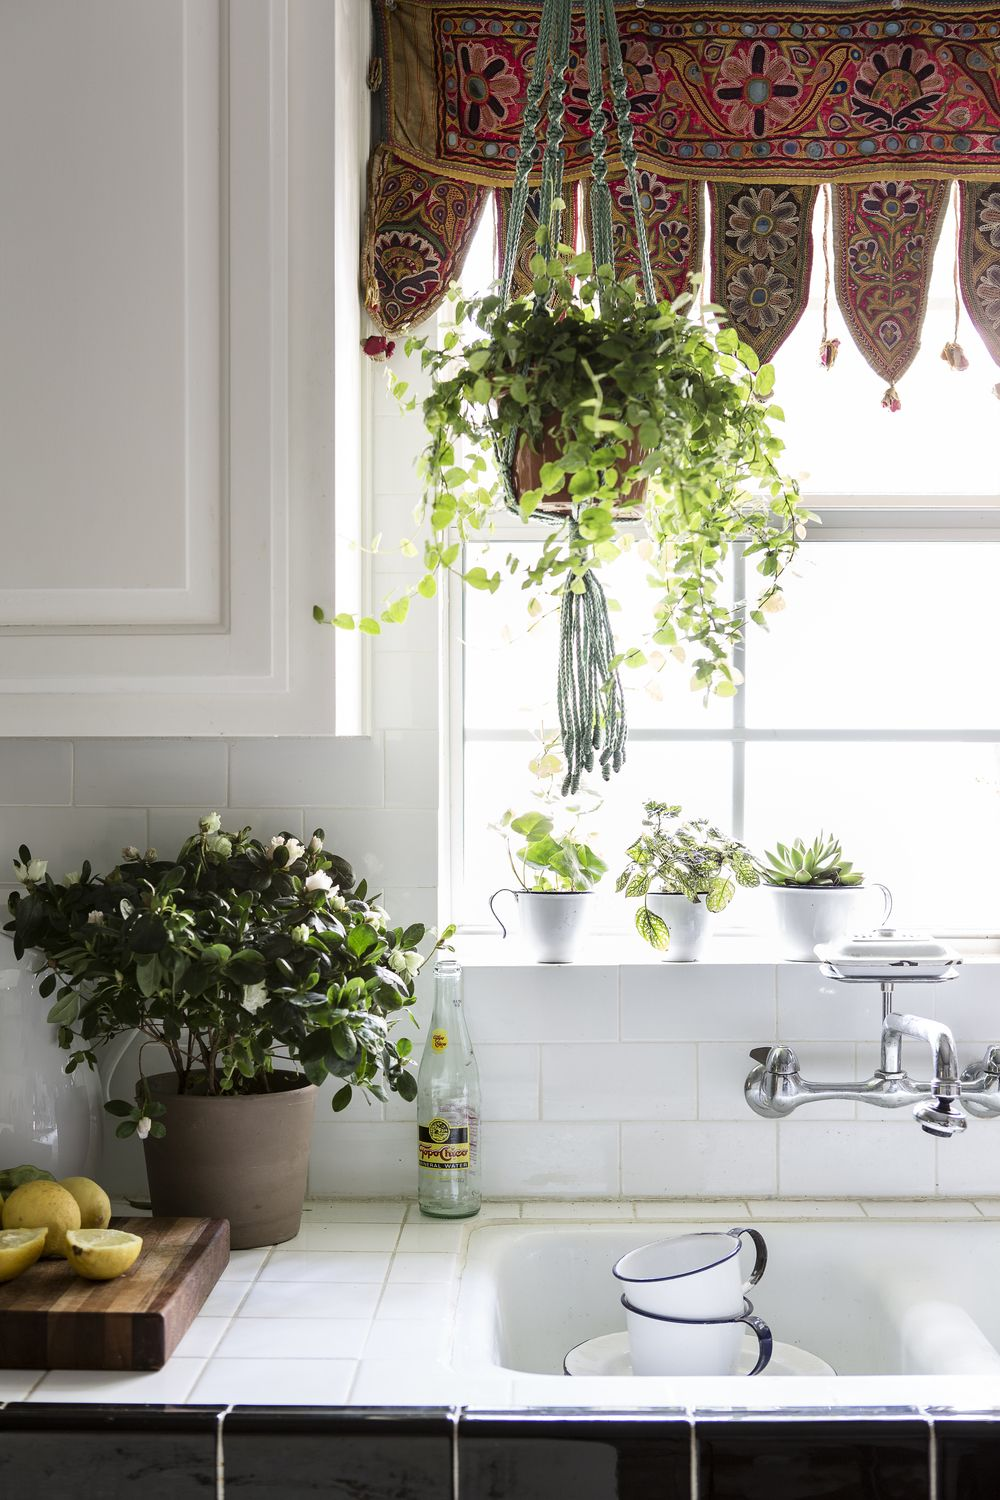 Paige morse design decor ideas pinterest kitchens plants and